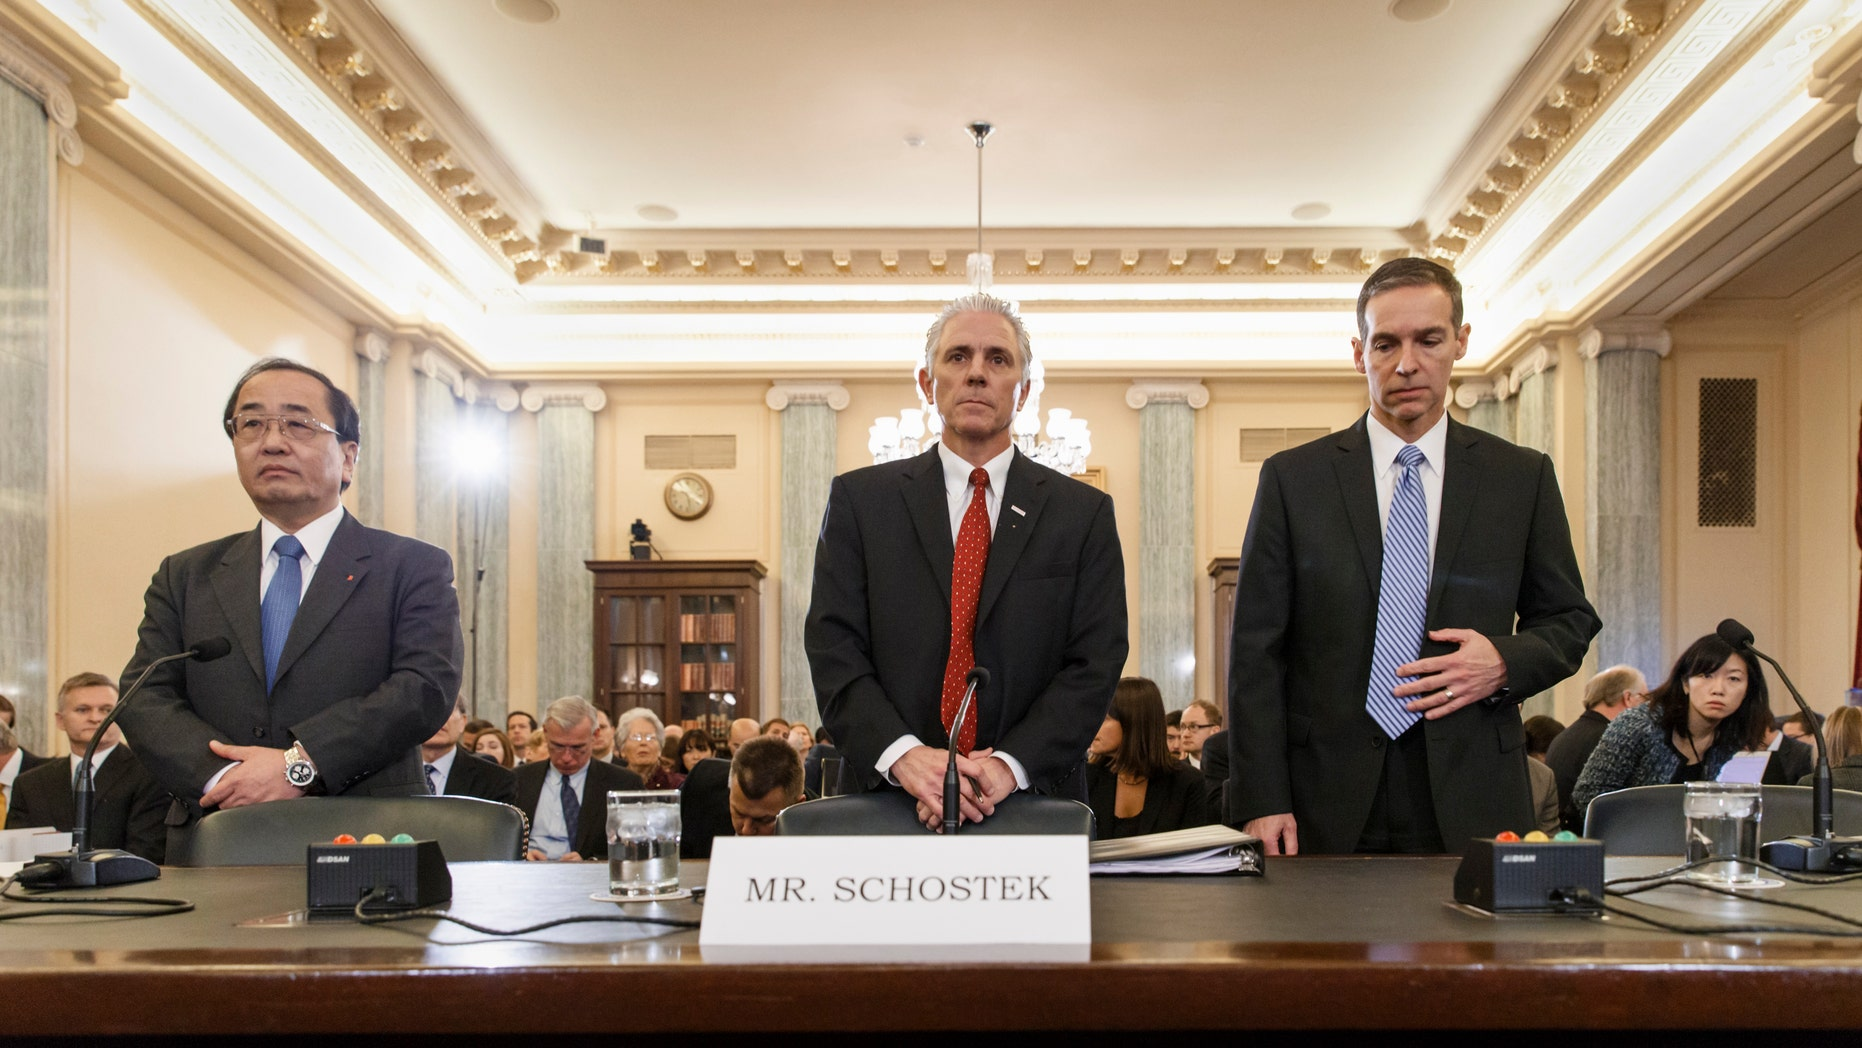 From left, Hiroshi Shimizu, senior vice president of global quality assurance at Japanese airbag maker Takata, Rick Schostek, executive vice president of Honda North America, and Scott Kunselman, Chrysler's senior vice president of vehicle safety and regulatory compliance, take their seats on Capitol Hill in Washington, Thursday, Nov. 20, 2014, prior to testifying before the Senate Commerce Committee hearing on airbags linked to multiple deaths and injuries in cars driven in the US. (AP Photo/J. Scott Applewhite)